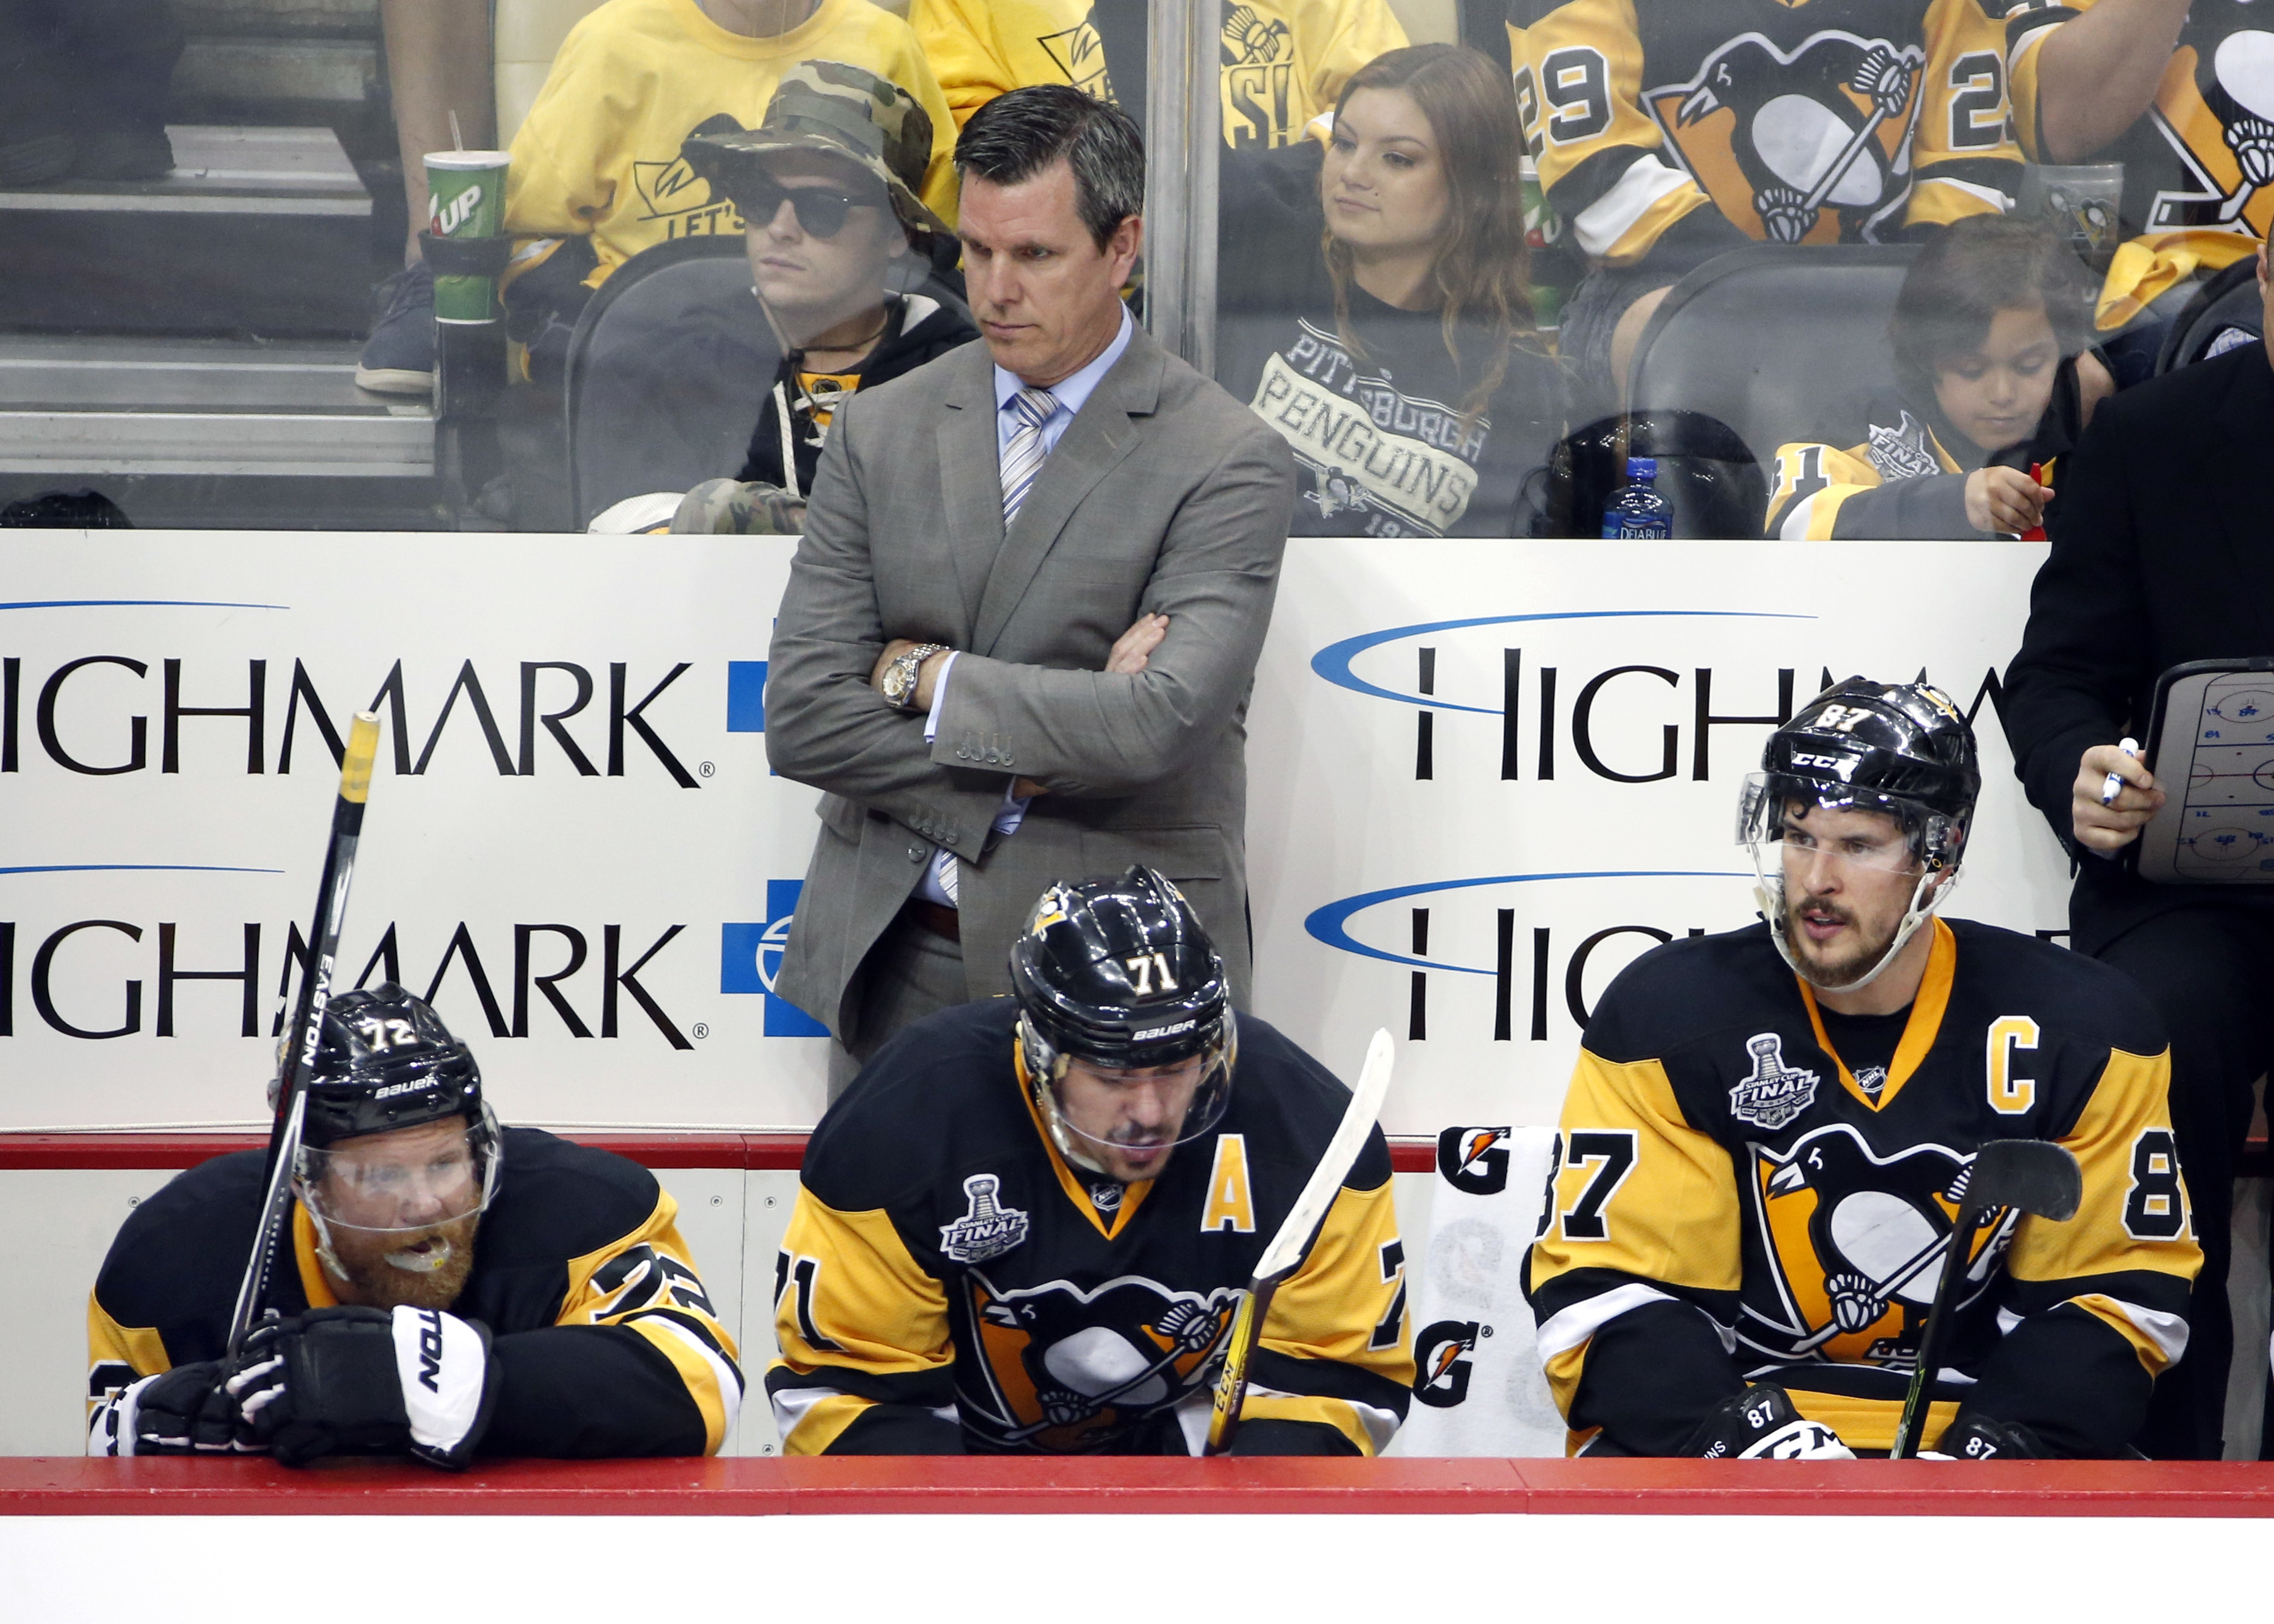 Pittsburgh Penguins coach Mike Sullivan stands behind Patric Hornqvist, Evgeni Malkin and Sidney Crosby from left, during the third period in Game 5 of the NHL hockey Stanley Cup Finals against the San Jose Sharks on Thursday, June 9, 2016, in Pittsburgh.